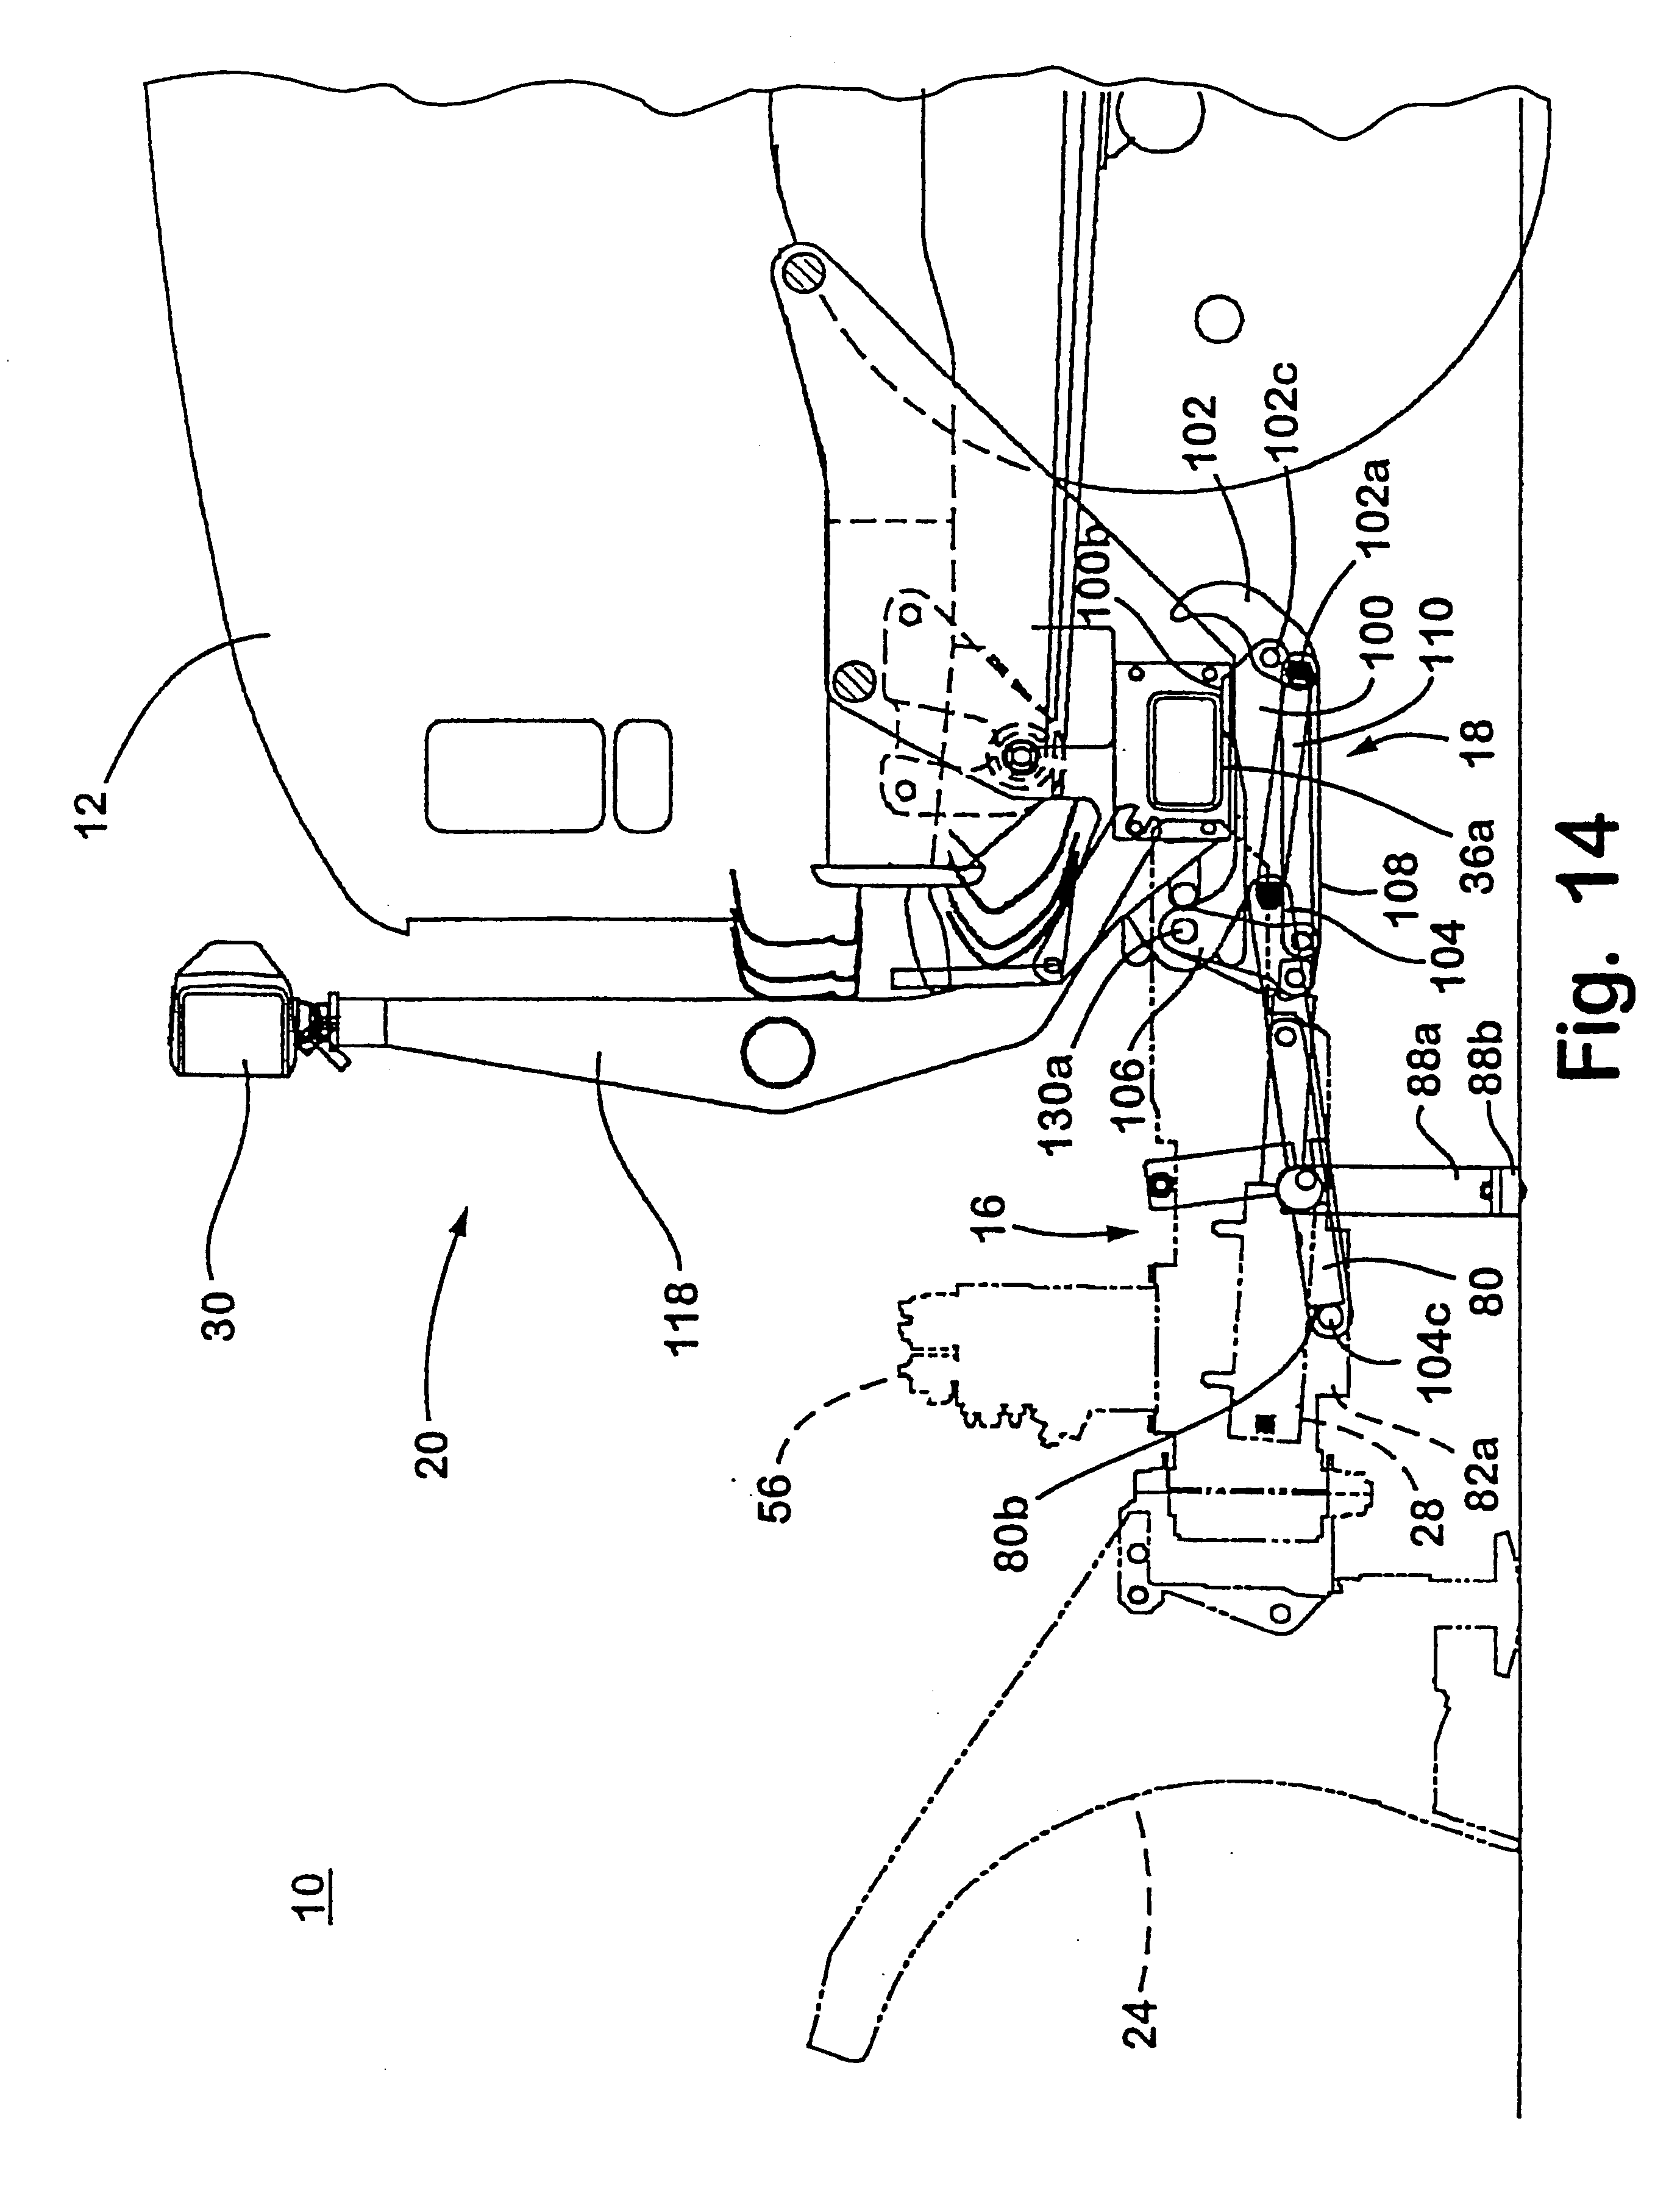 patent us6276076 plow hitch assembly for vehicles patents Blizzard Plow Parts Diagram patent drawing